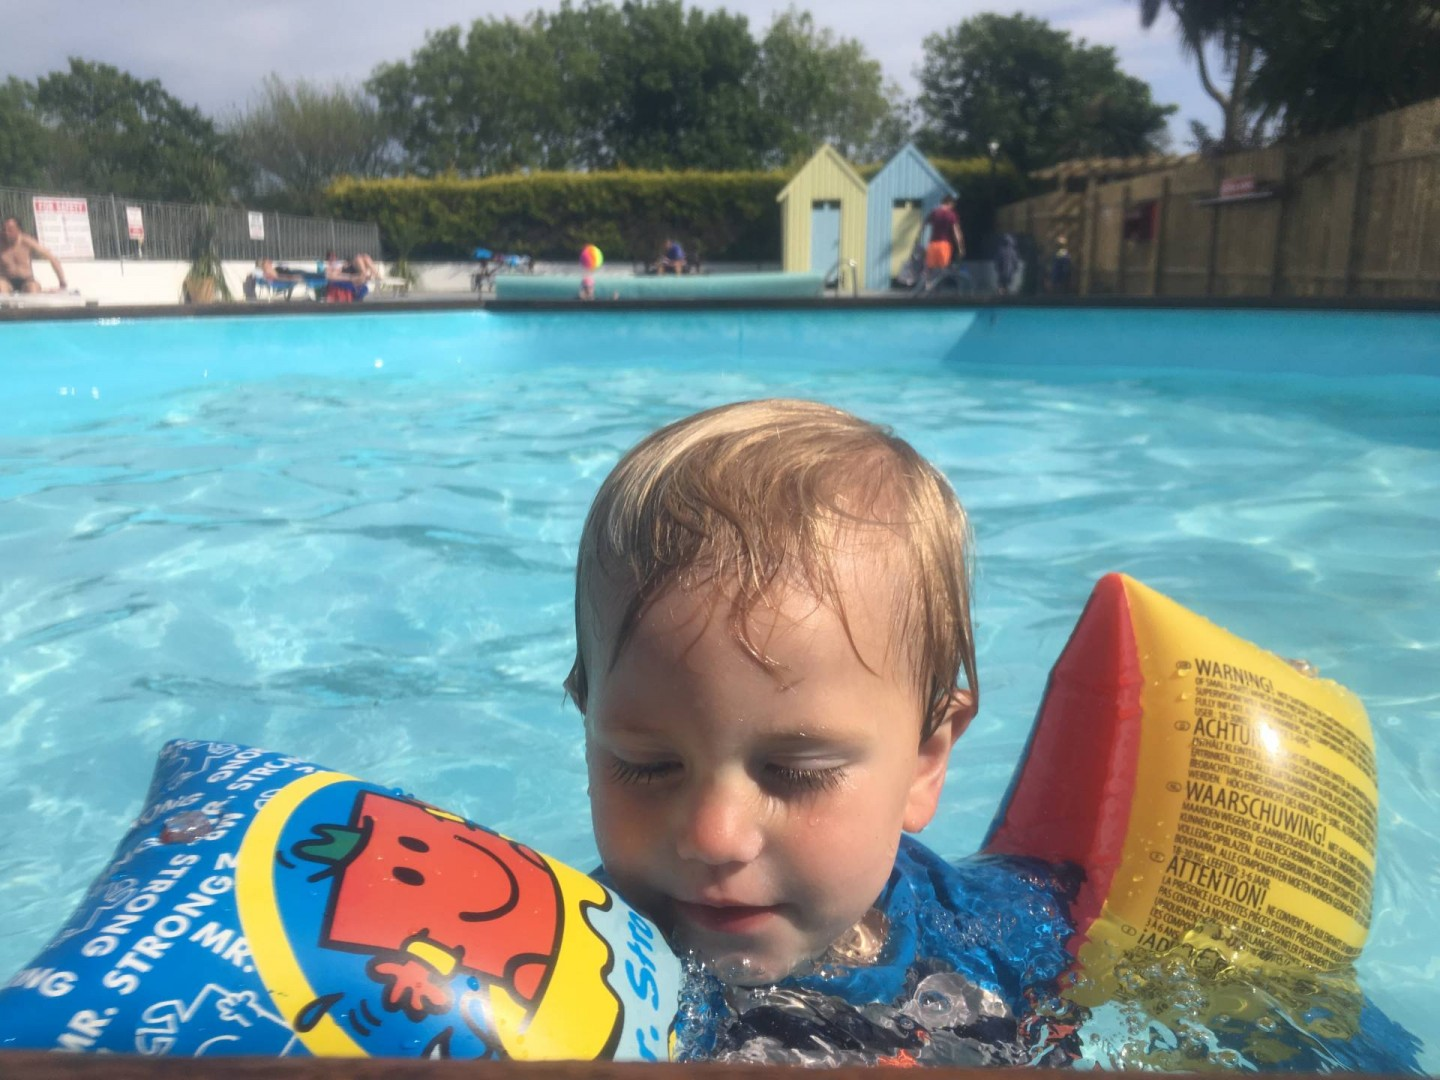 the toddler swimming pool at Trevella park is great for a warm paddle while the older kids and adults play in the larger pool